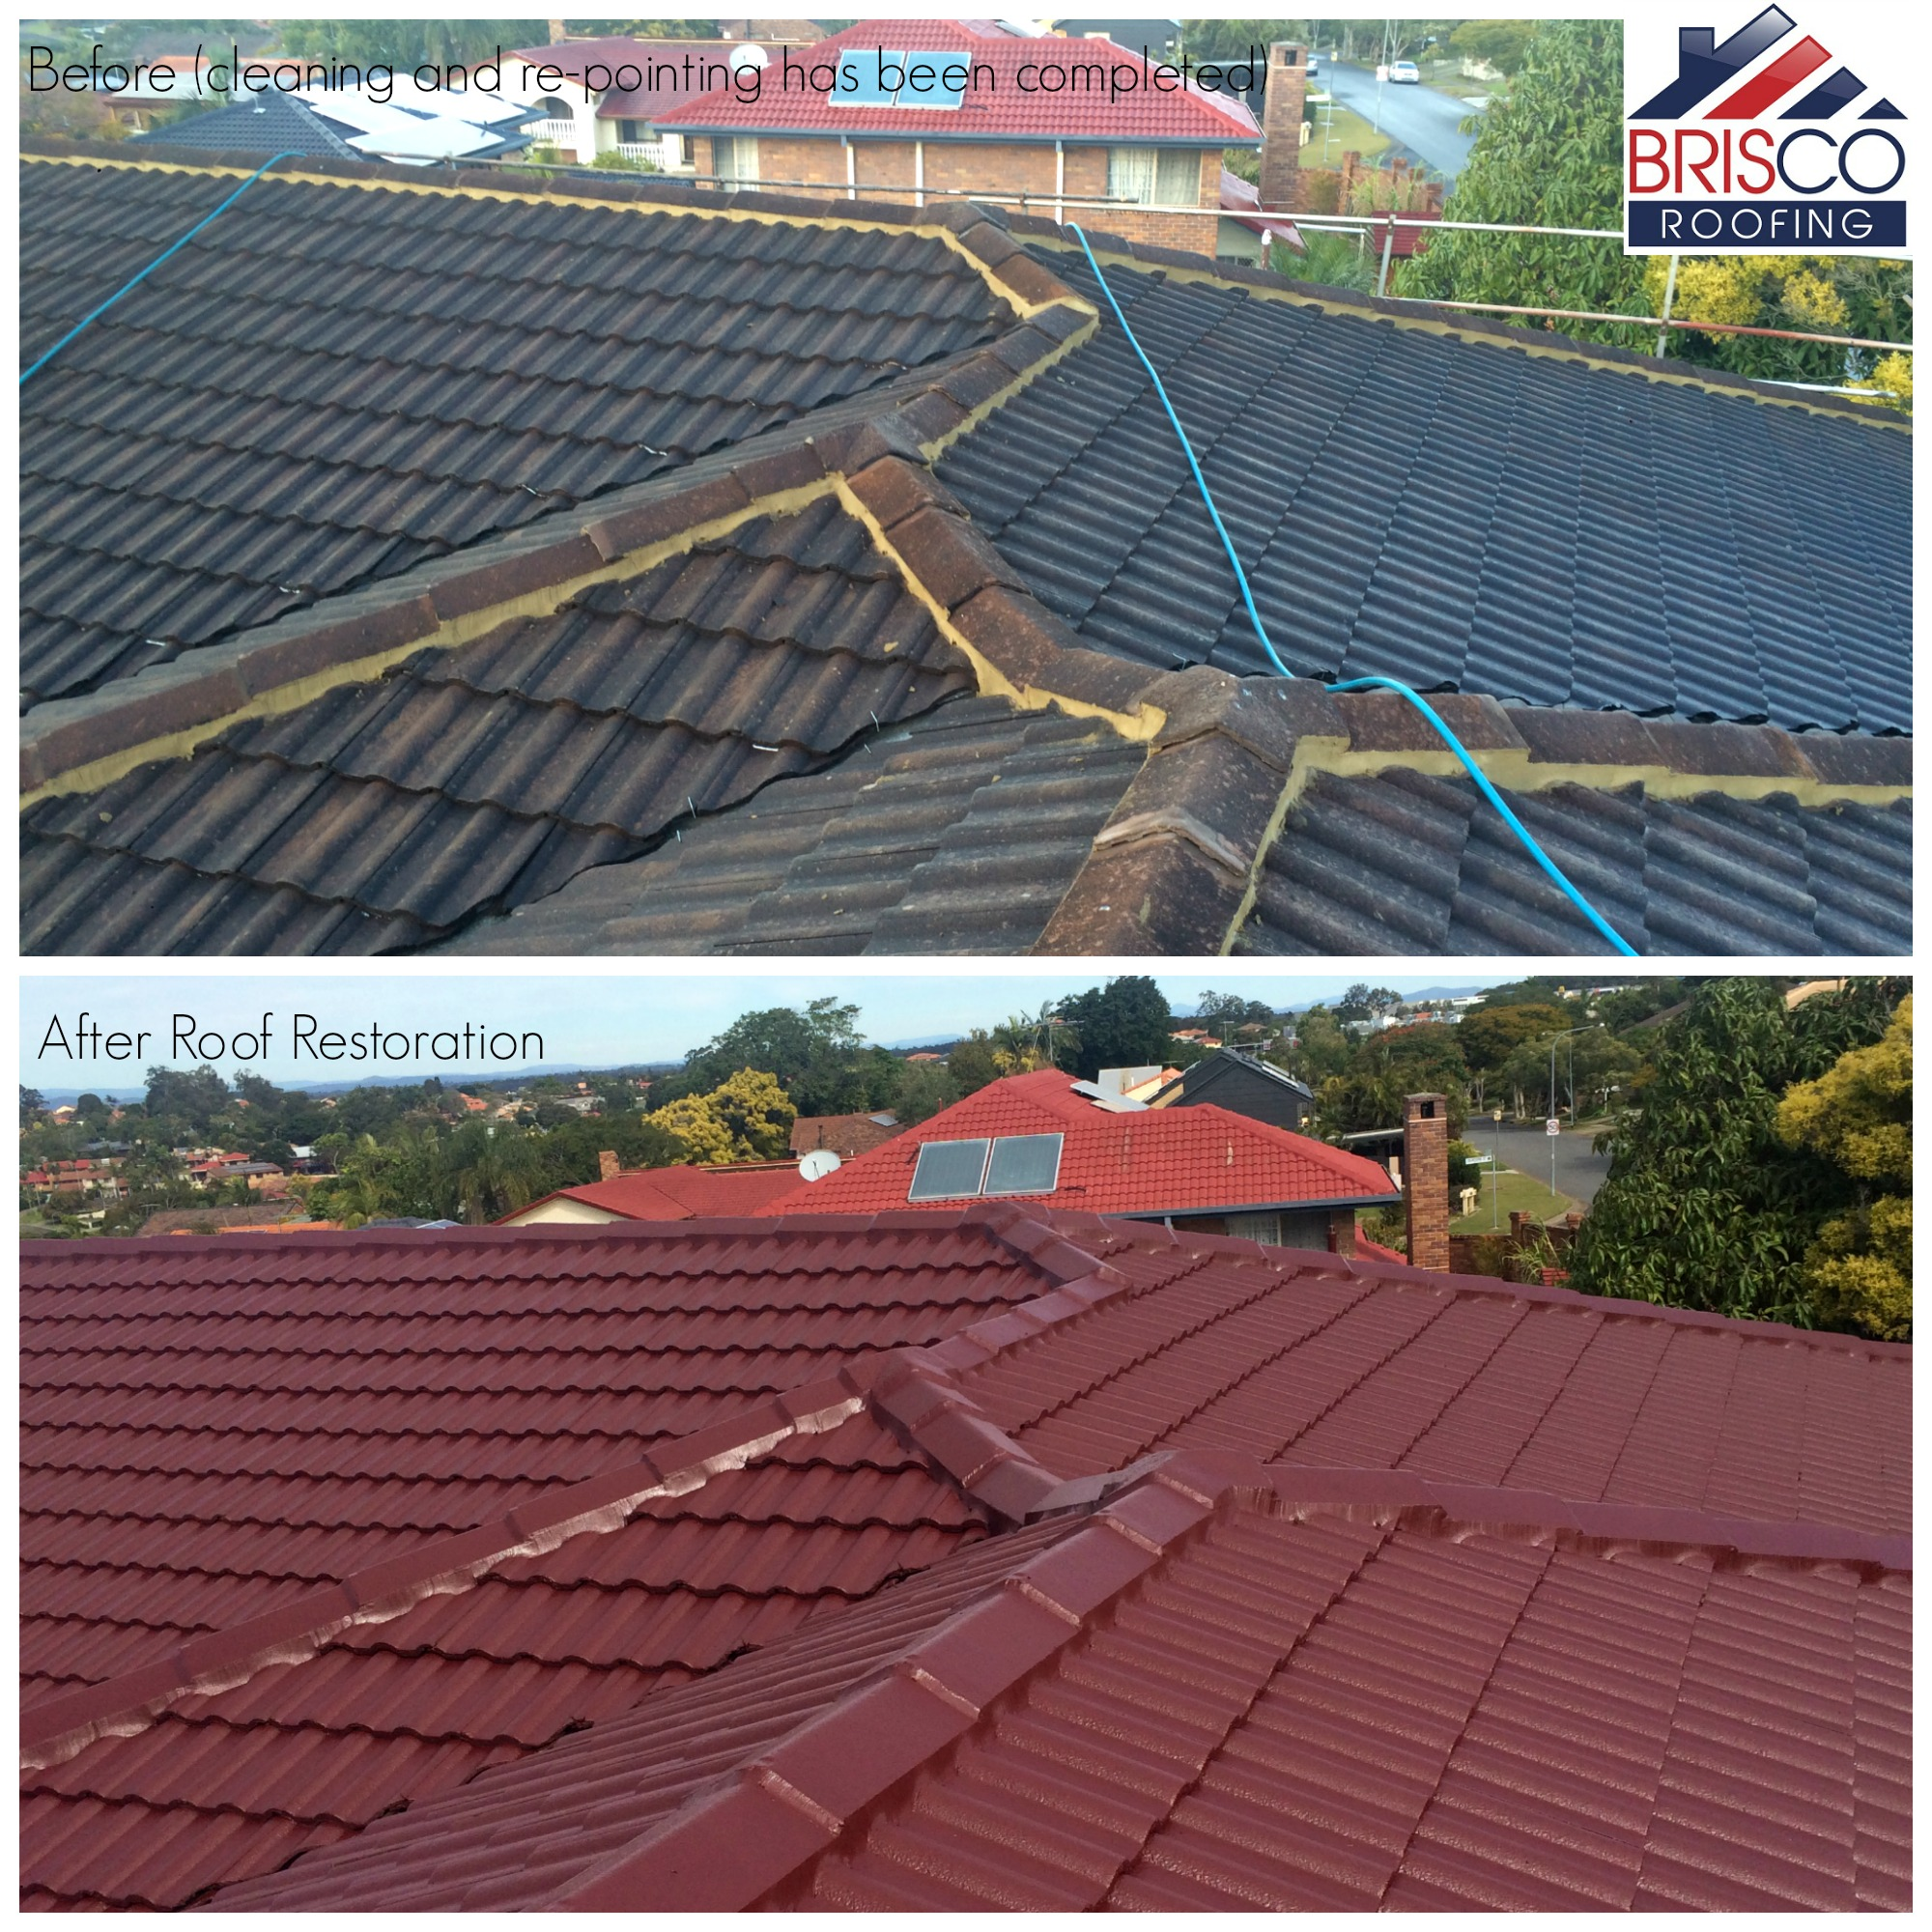 after cleaning and repointing roof restoration